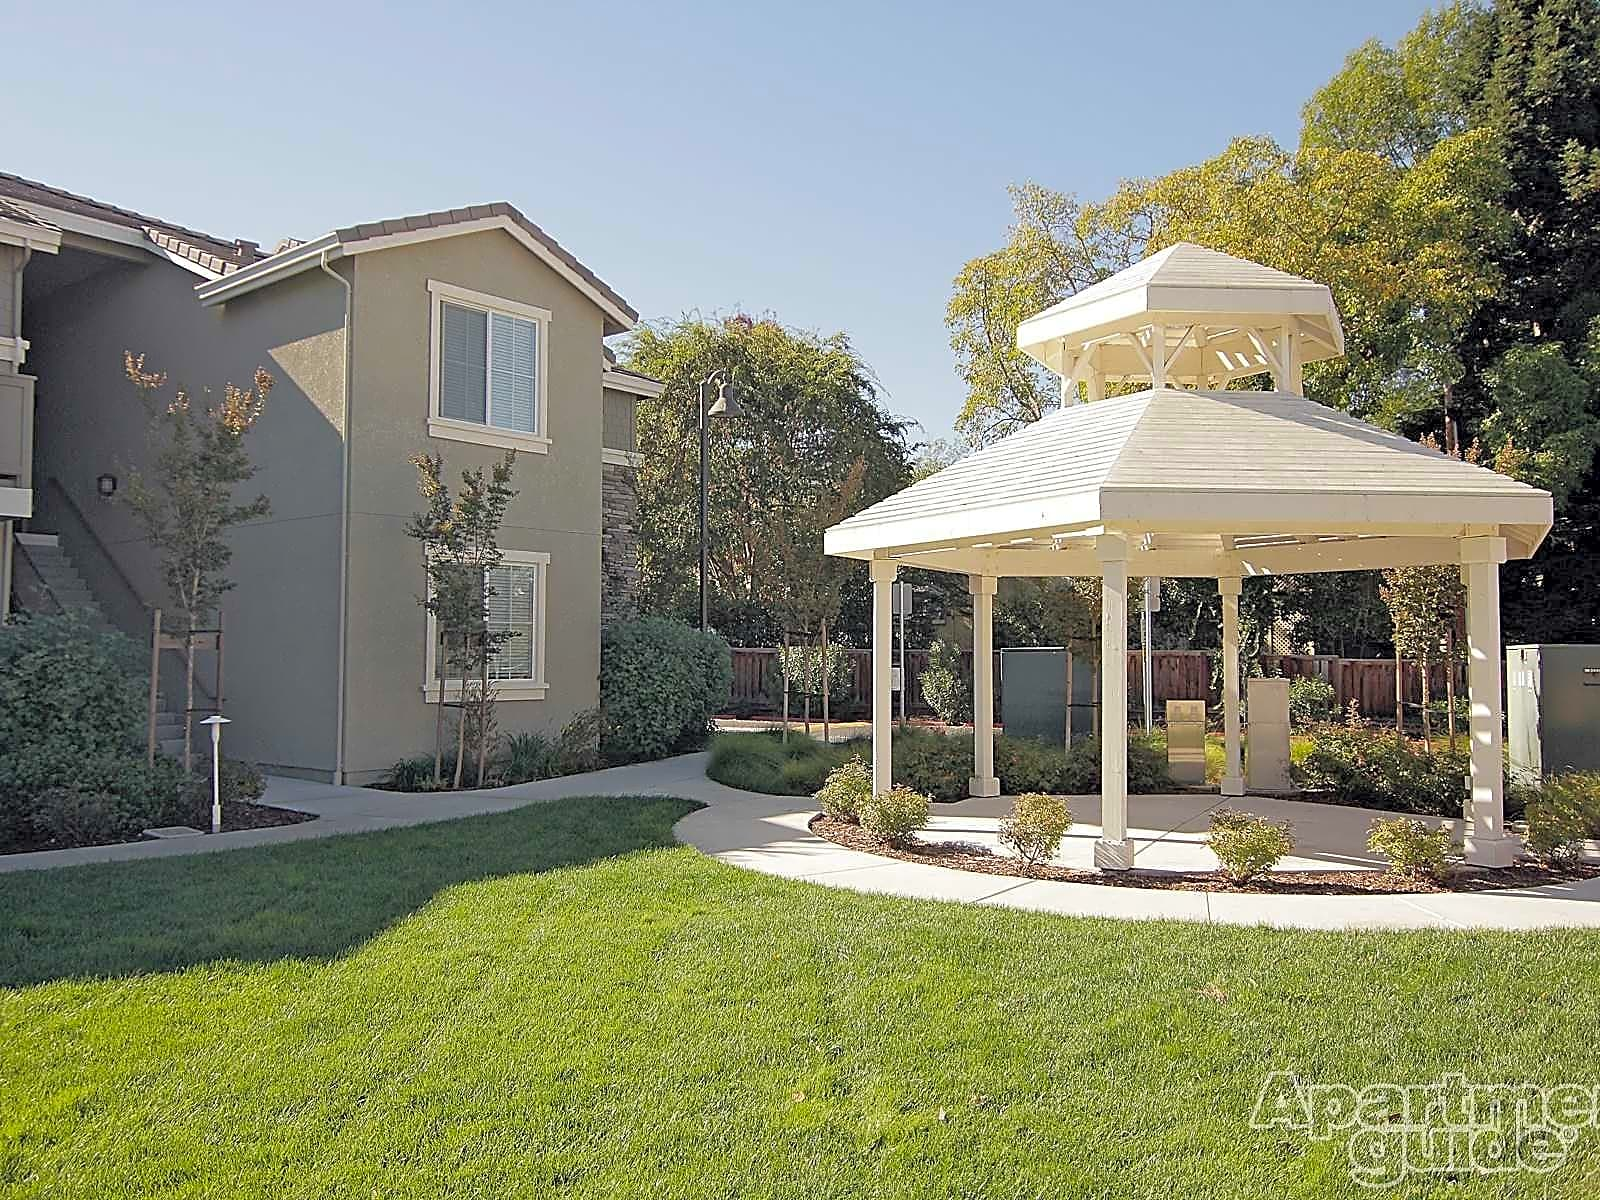 Rose Garden Village Apartments Danville Ca 94526